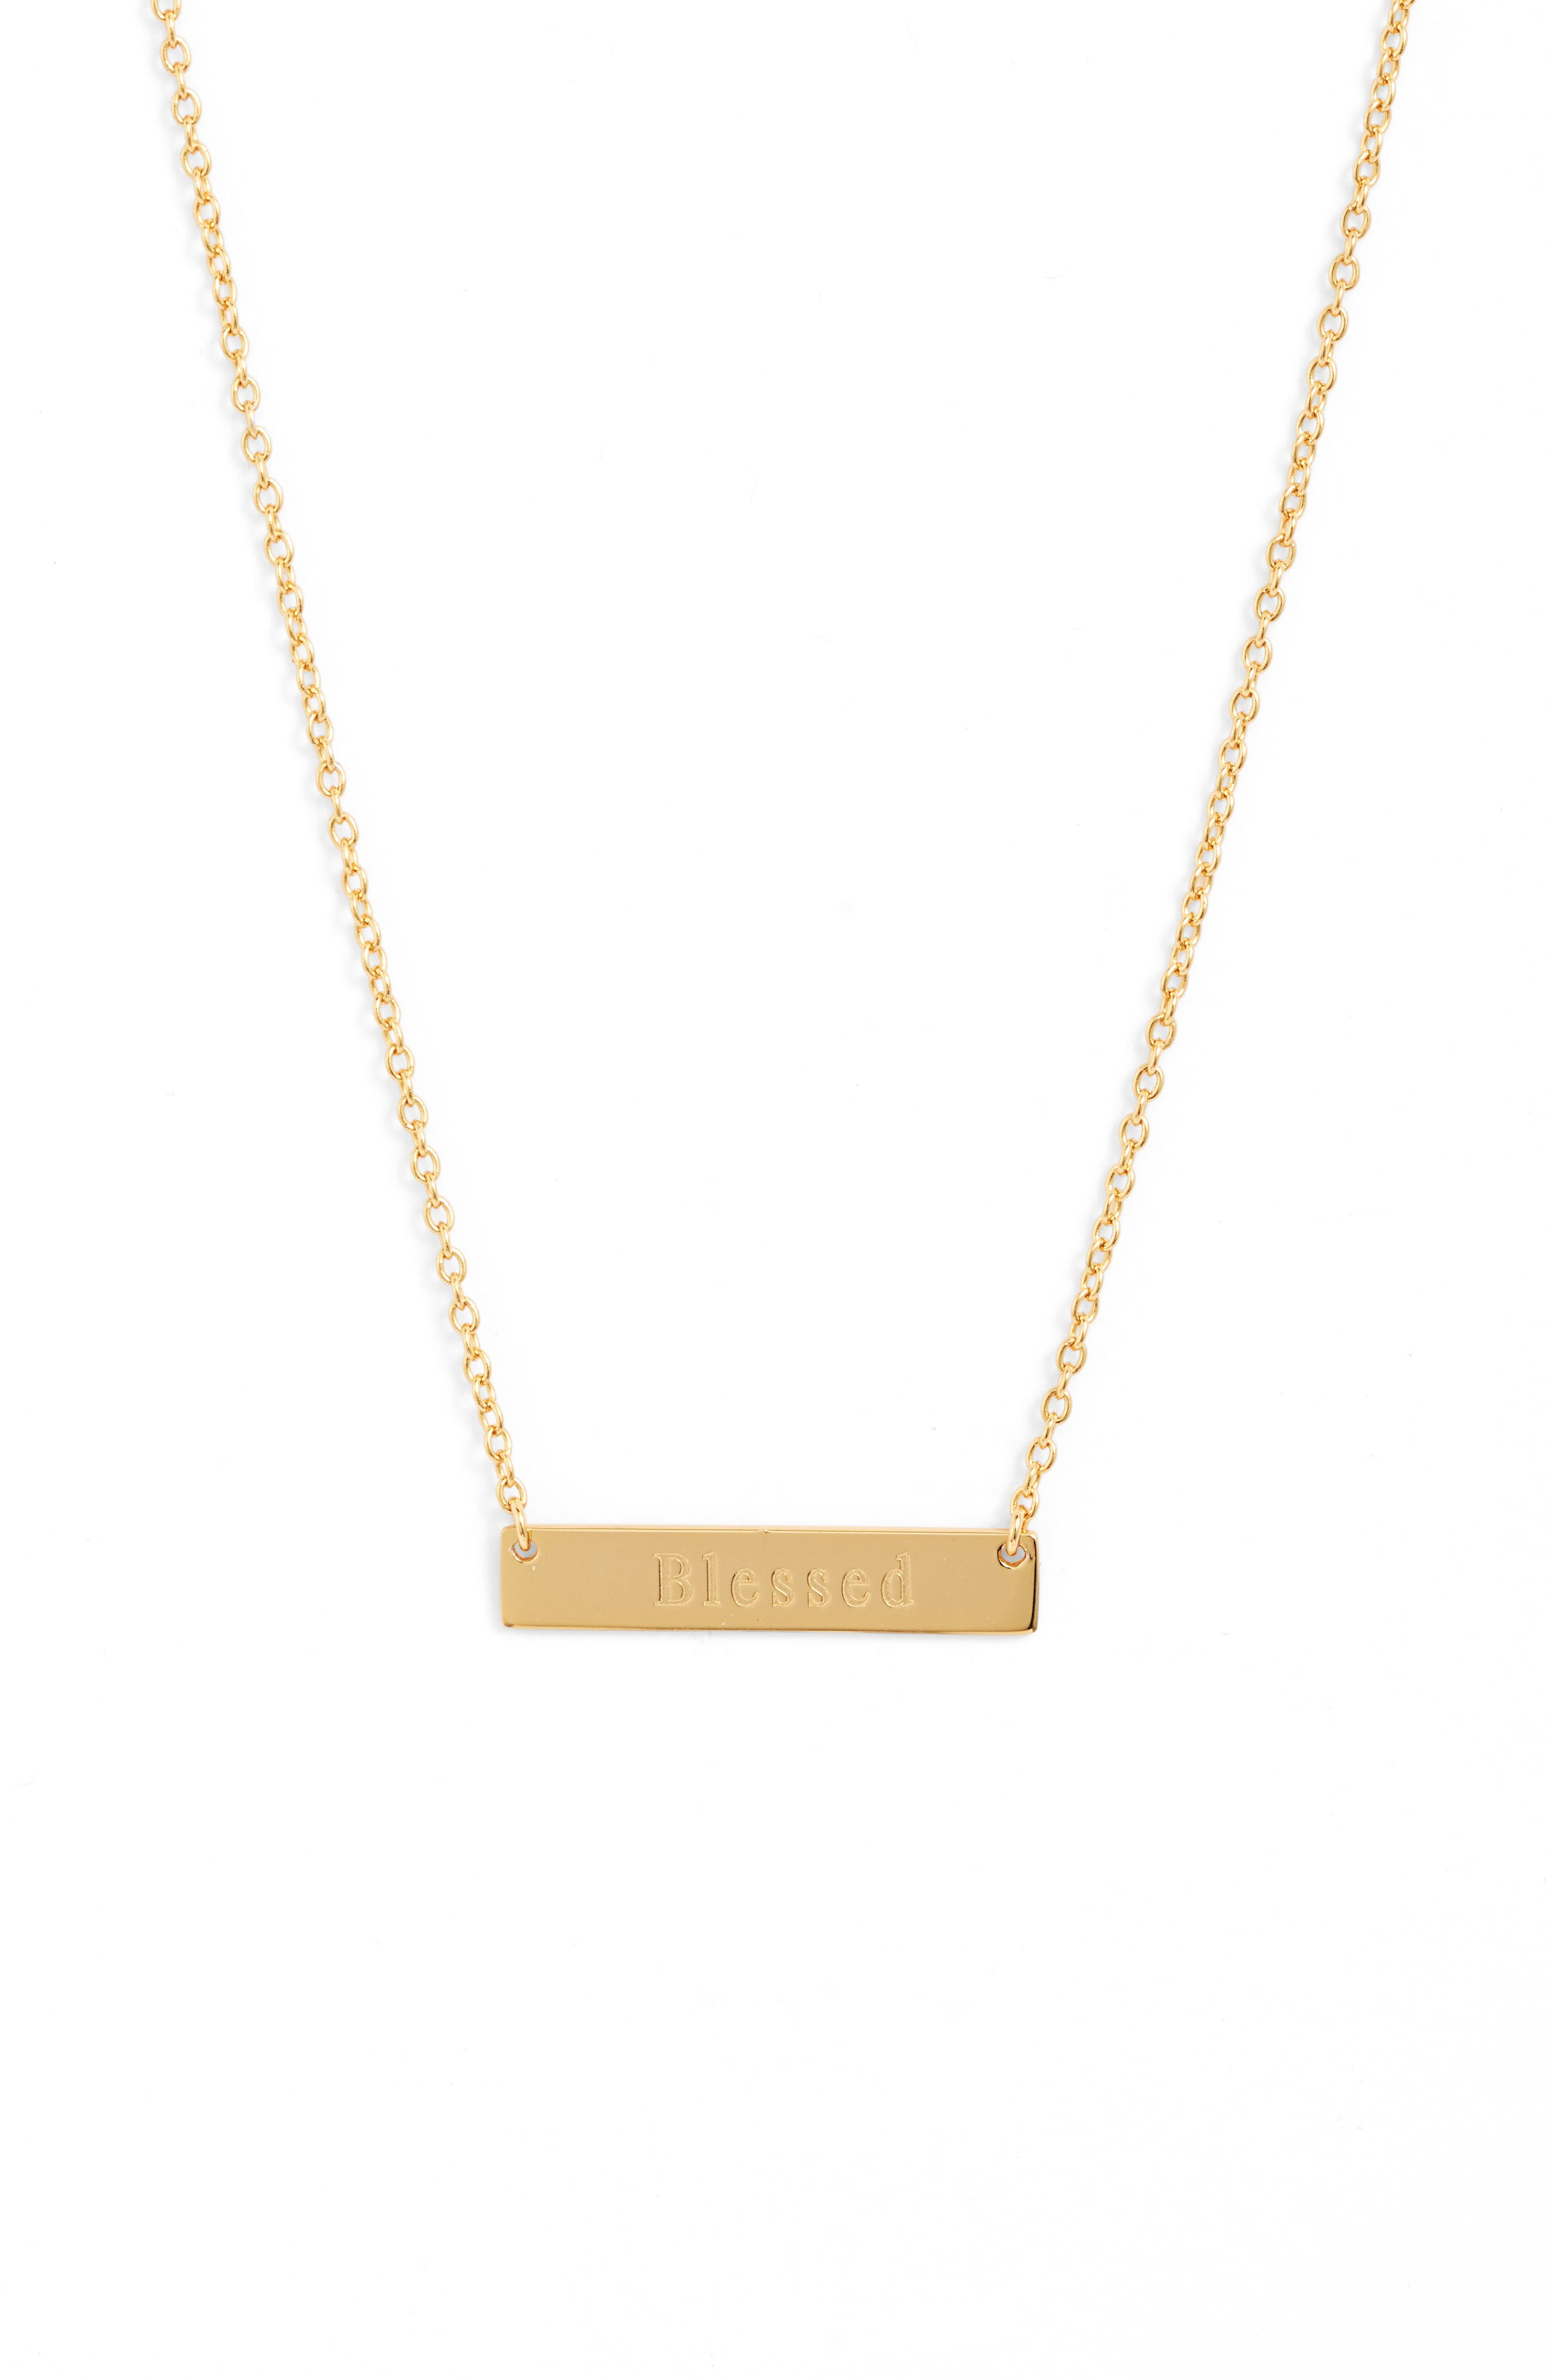 A simple design featuring a gleaming bar pendant embossed with an inspiring message defines this understated necklace. Style Name: Sterling Forever Blessed Bar Pendant Necklace. Style Number: 5904772. Available in stores.